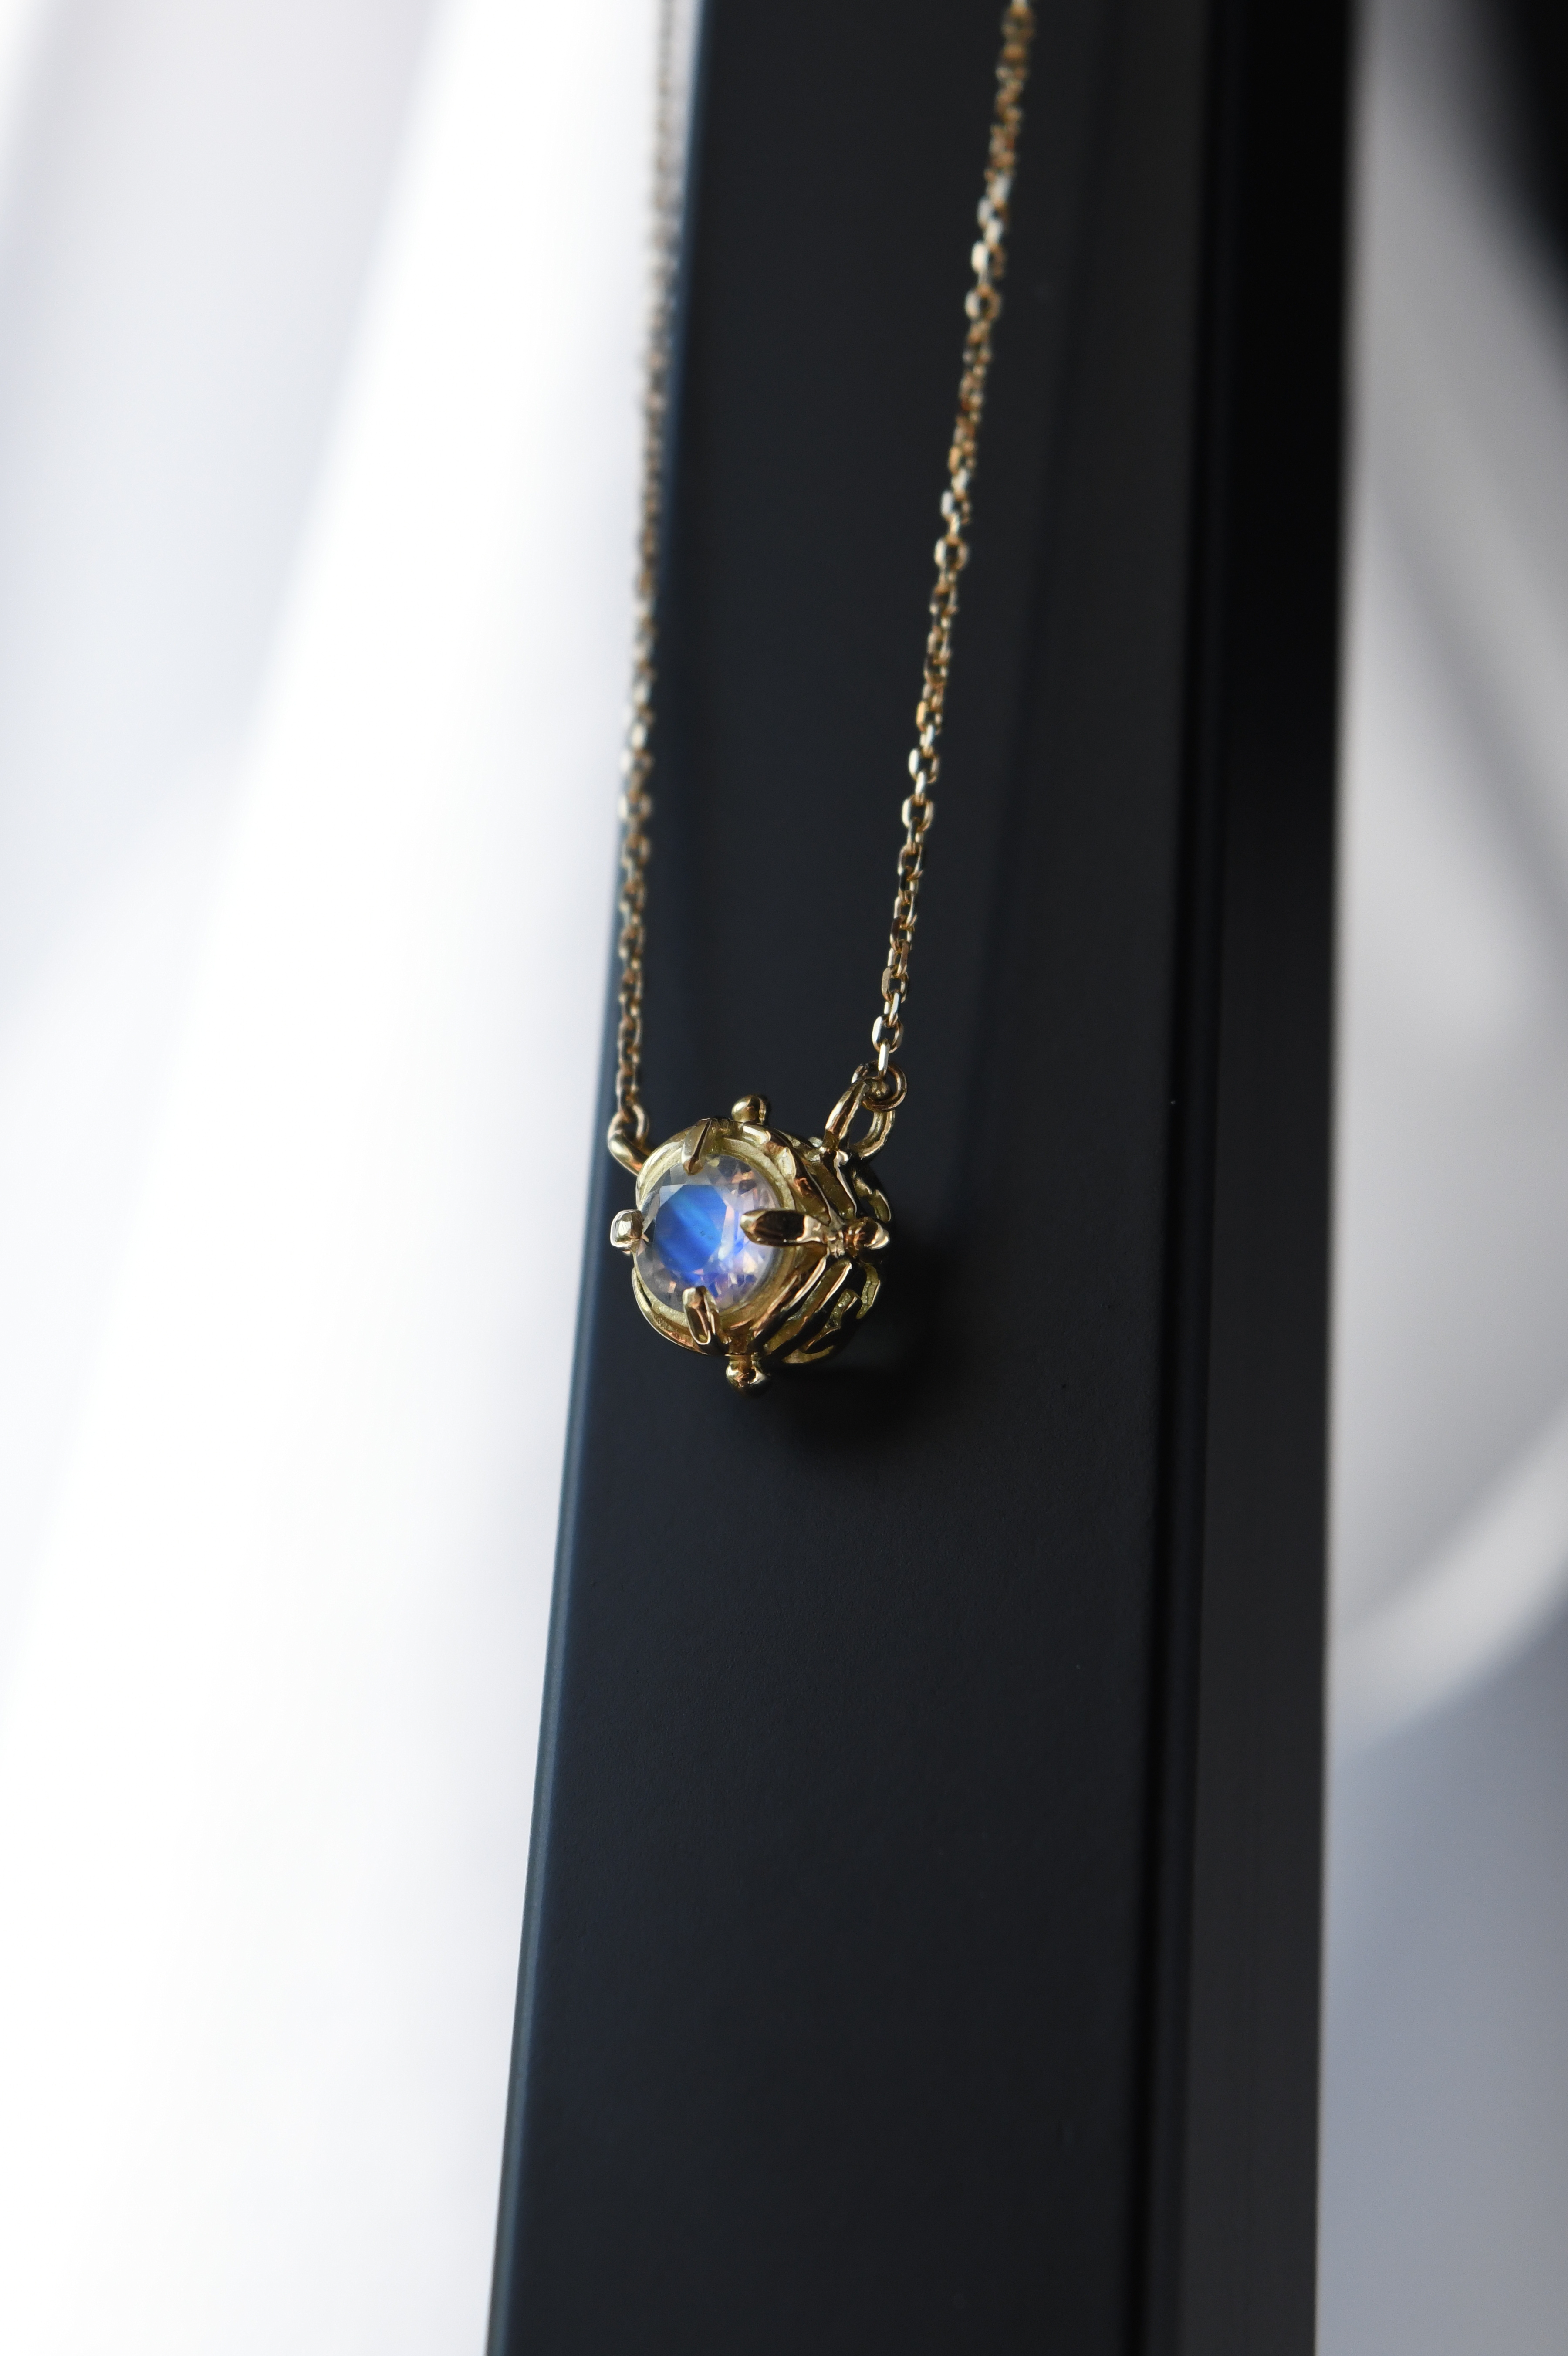 K18 Royal Blue Moonstone Abyss Design Necklace 18金ロイヤルブルームーンストーンアビスデザインネックレス